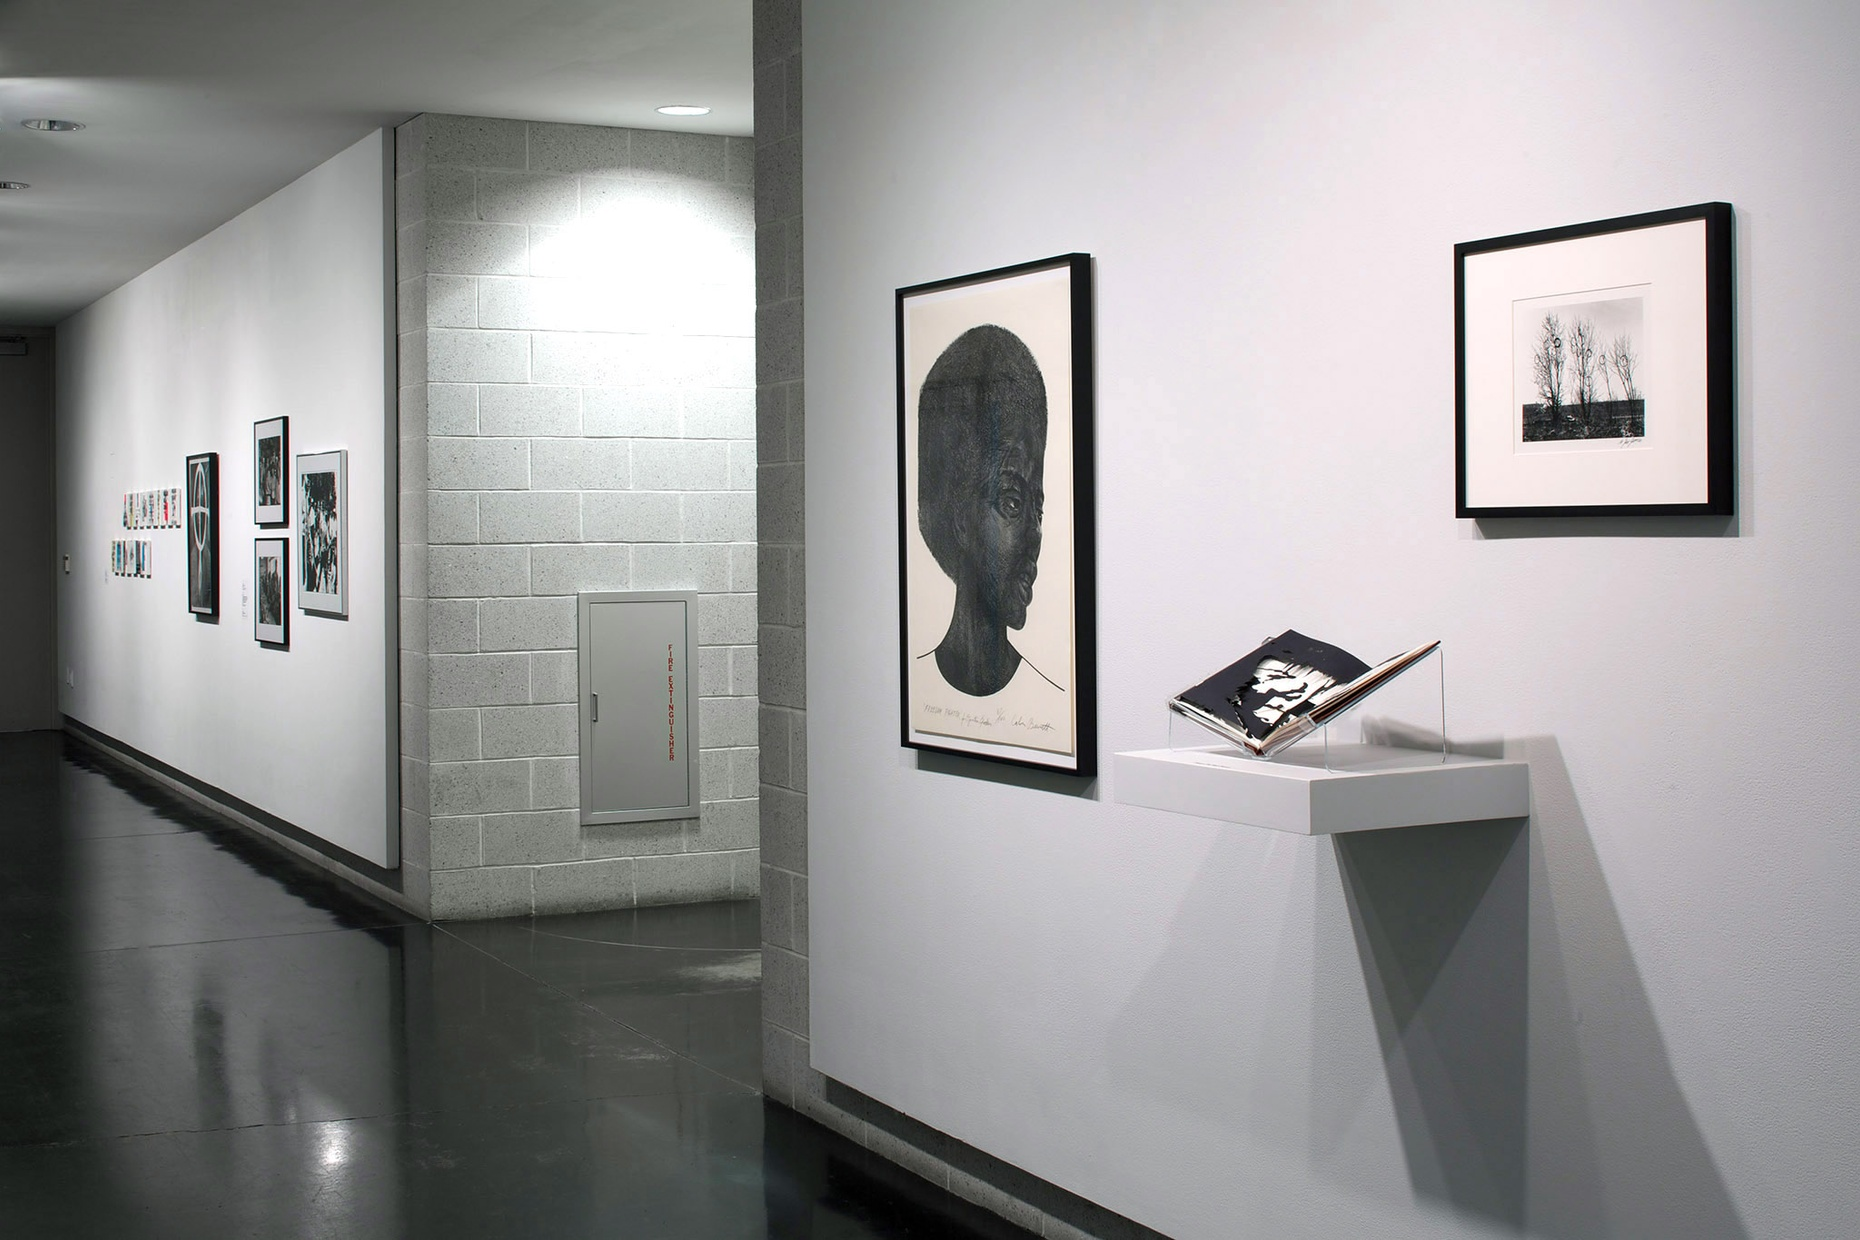 Three black and white artworks hang on a white wall in a gallery; one picture depicts the profile of a black woman, one is a photograph of a landscape with trees, and one is an open book with silhouettes placed on it.